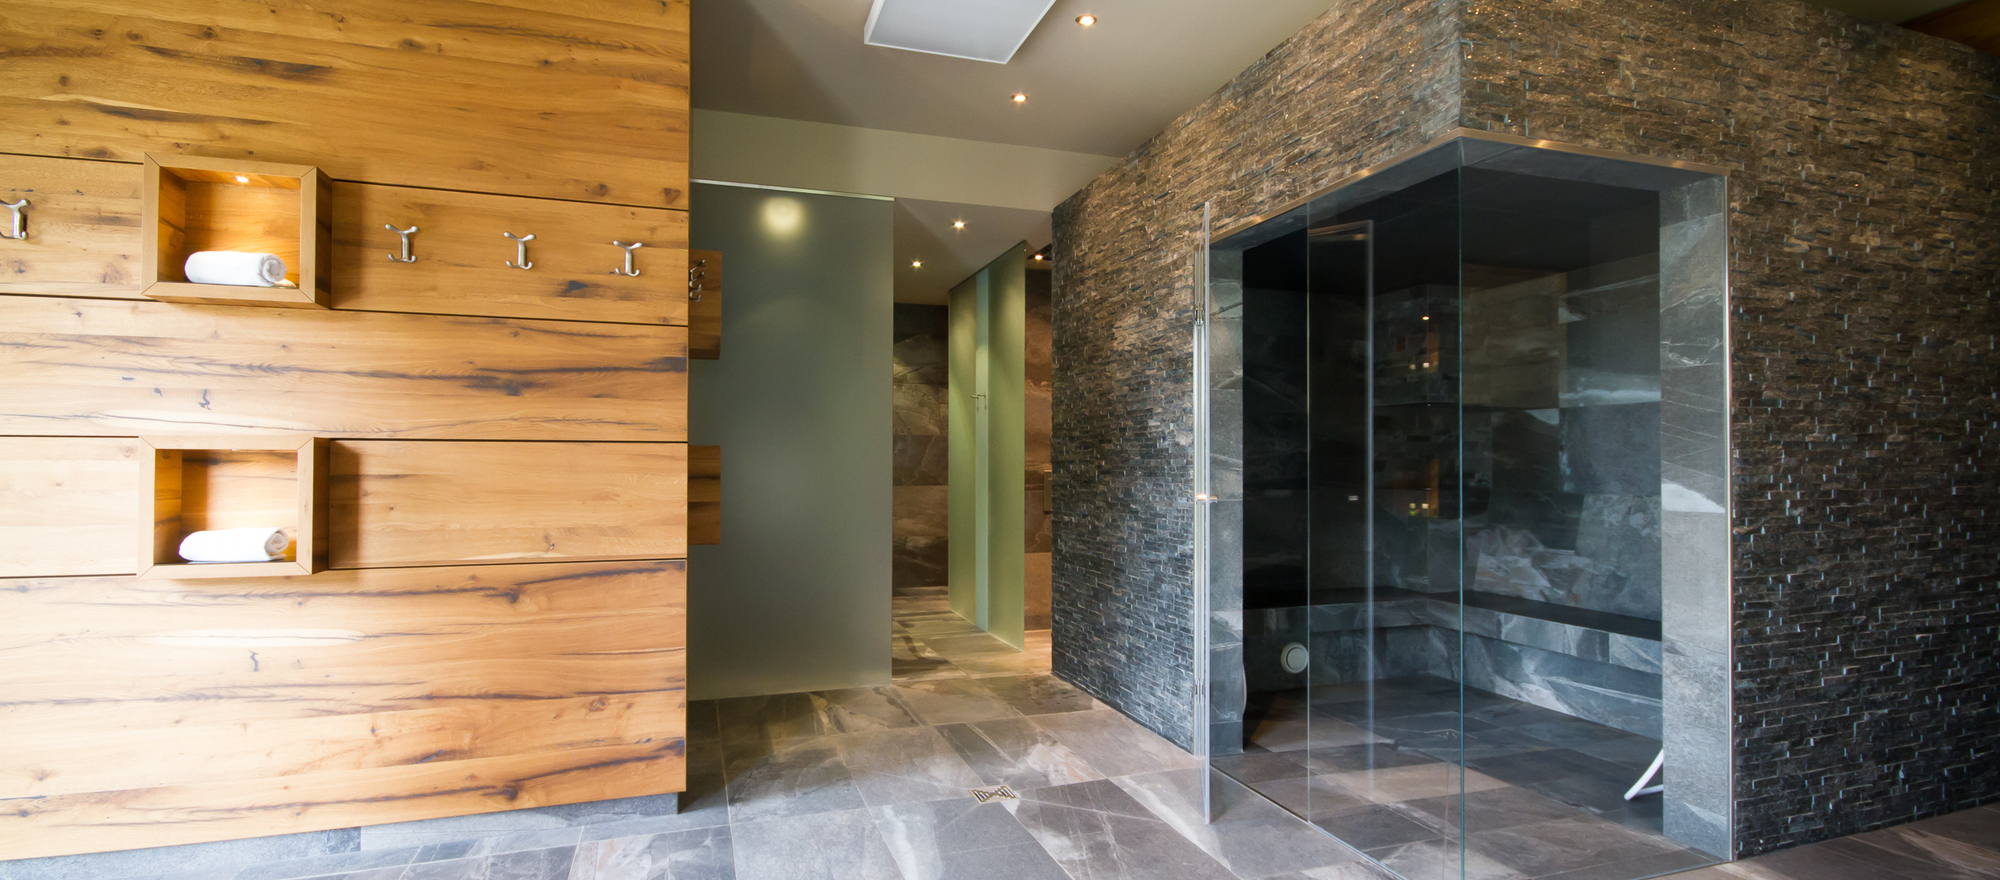 Wellness in the Ringhotel Landhaus Nicolai in Lohmen, hotel in Saxon Switzerland